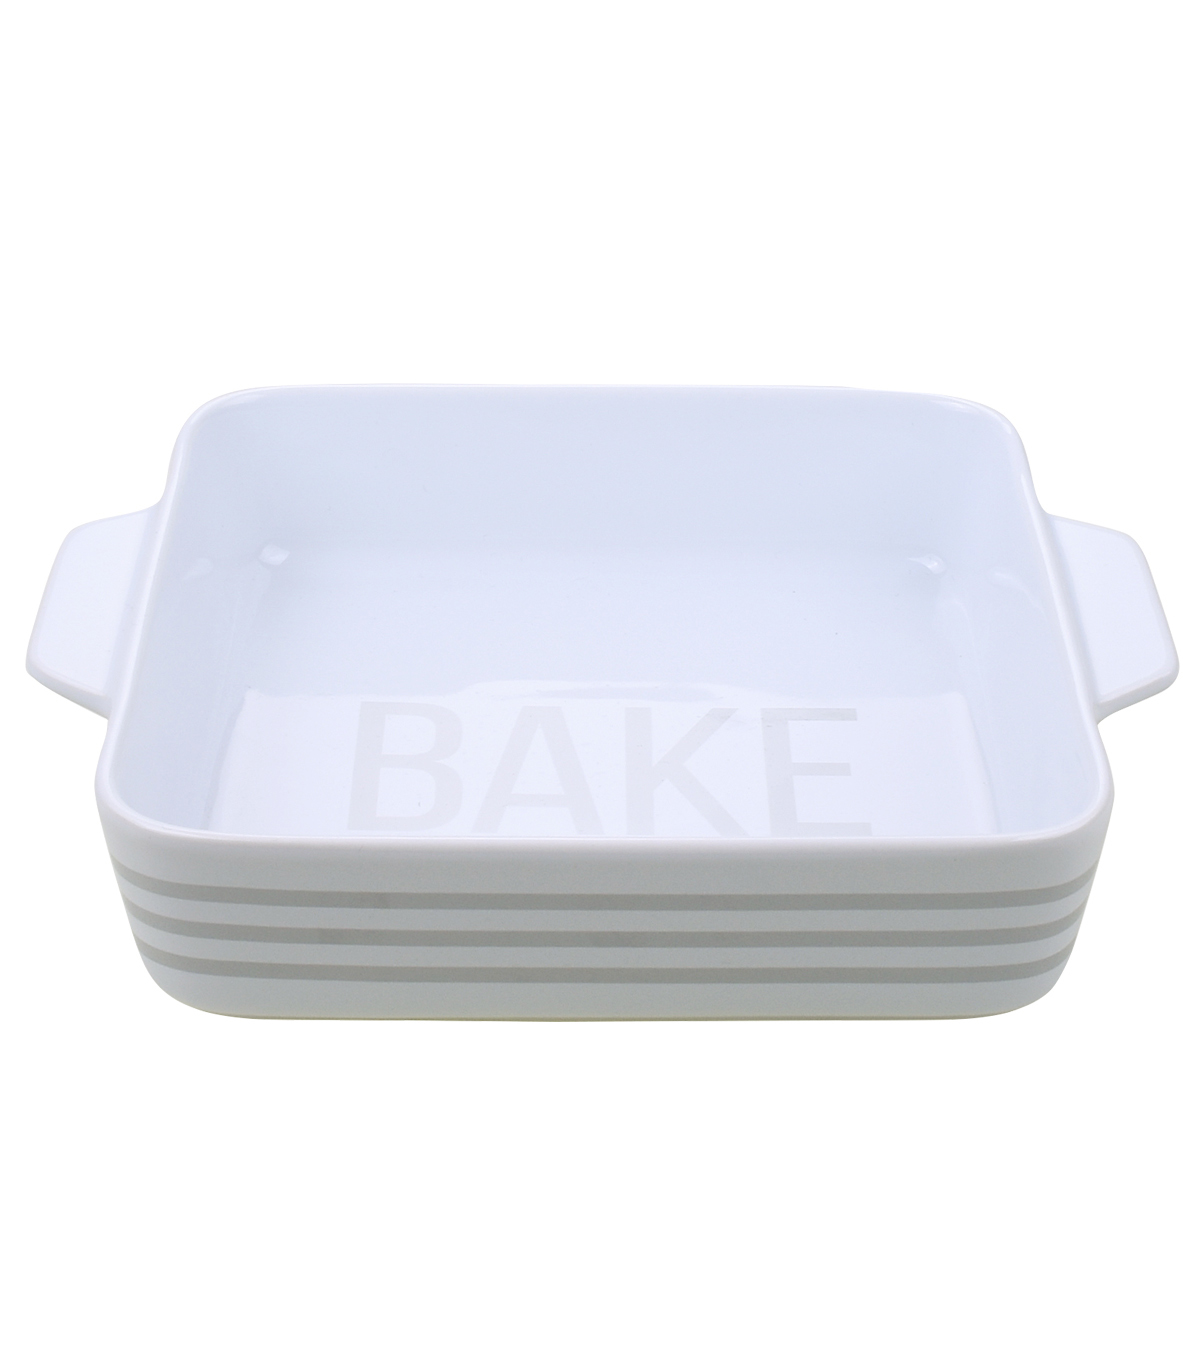 Ceramic 9\u0027\u0027 Square Baker Pan